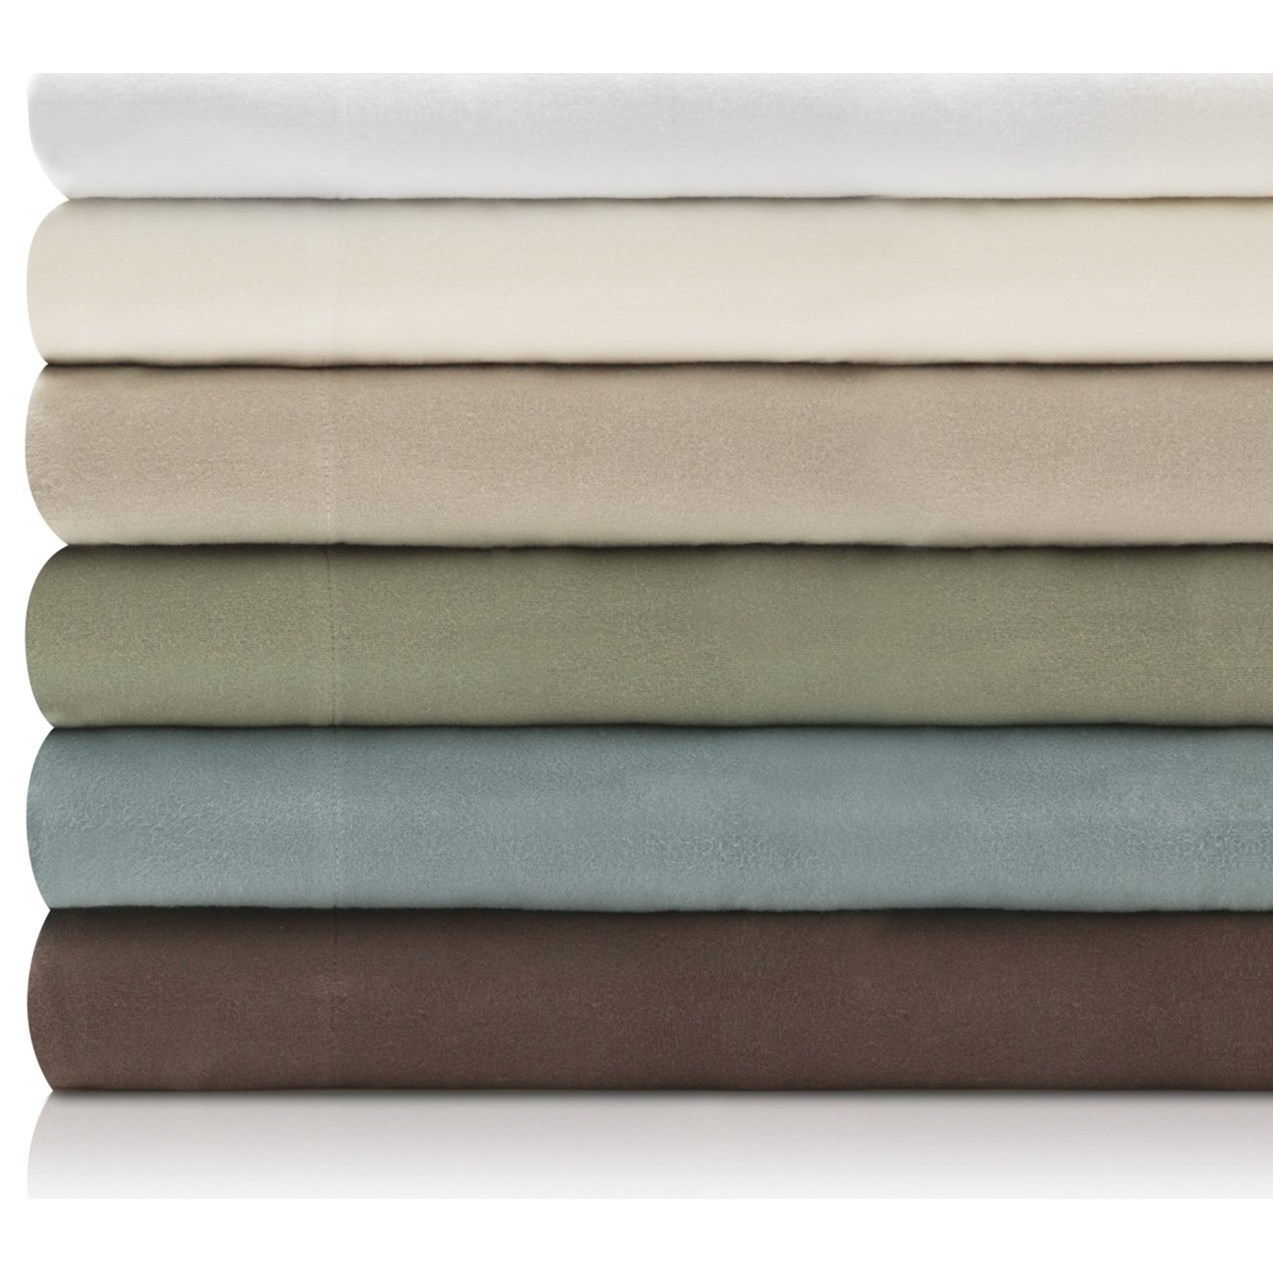 Malouf Portuguese Flannel Cal King Woven™ Portuguese Flannel Sheet Set - Item Number: WO19CKIVFS